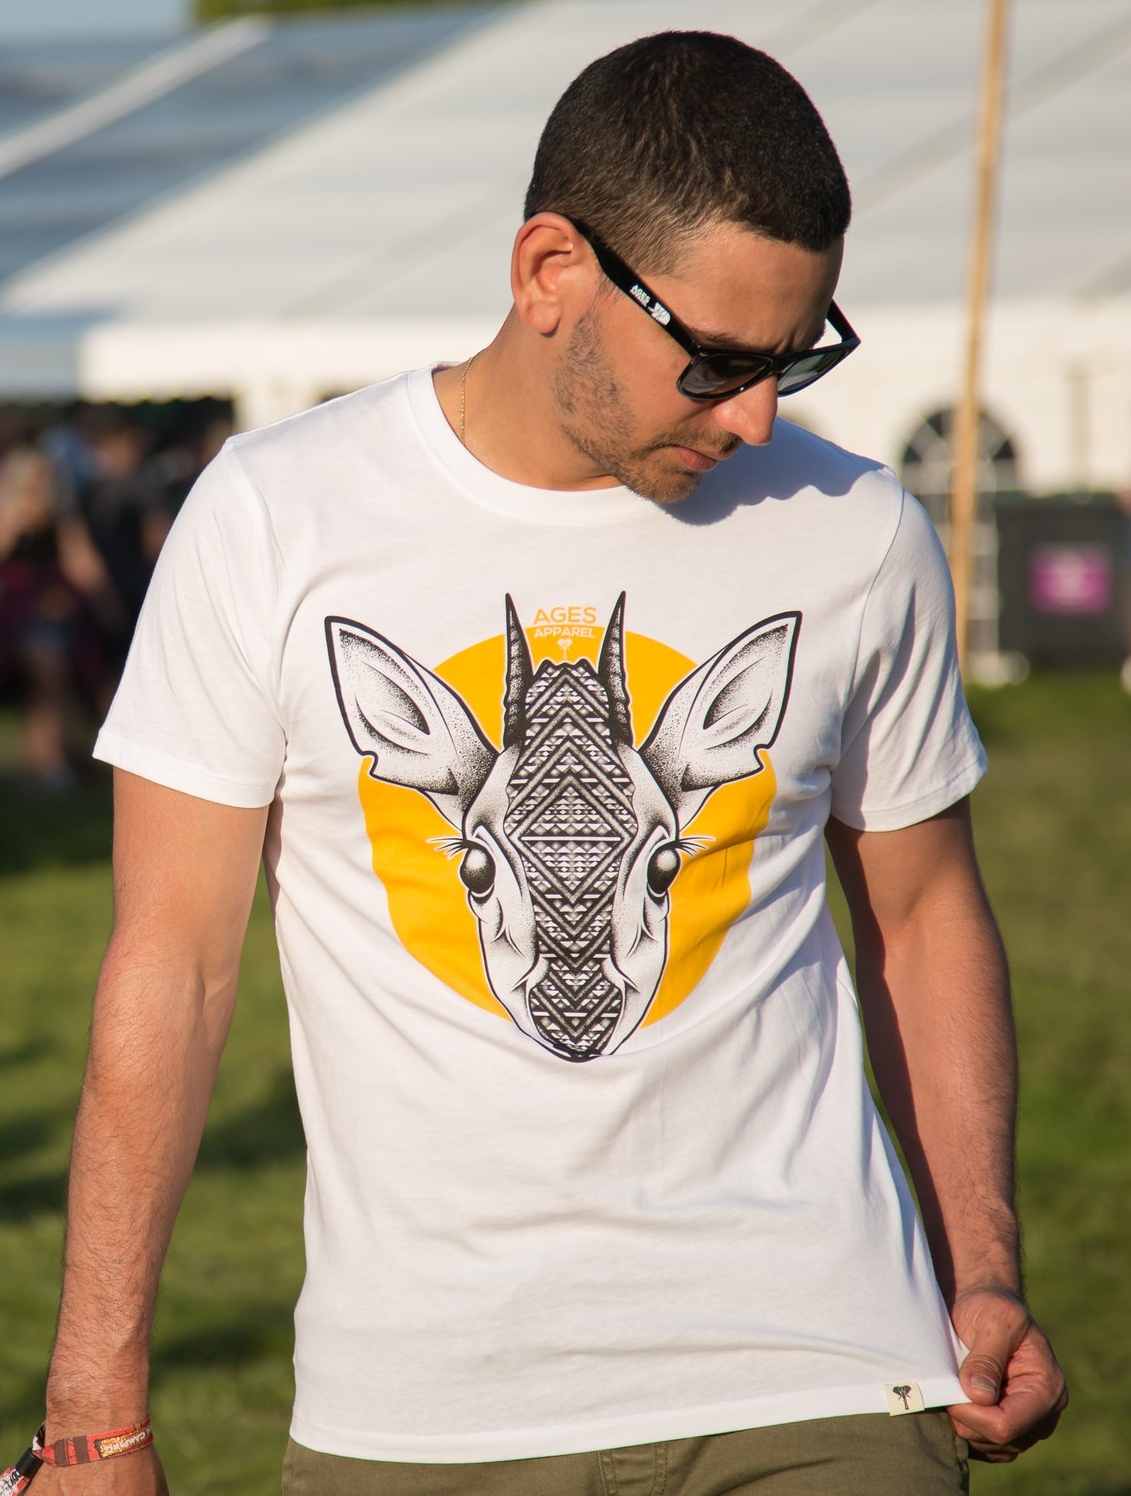 Organic Dik-Dik Tee  Artwork inspired by the Dik-Dik, a species of small antelope that live in the bushlands of eastern and southern Africa.